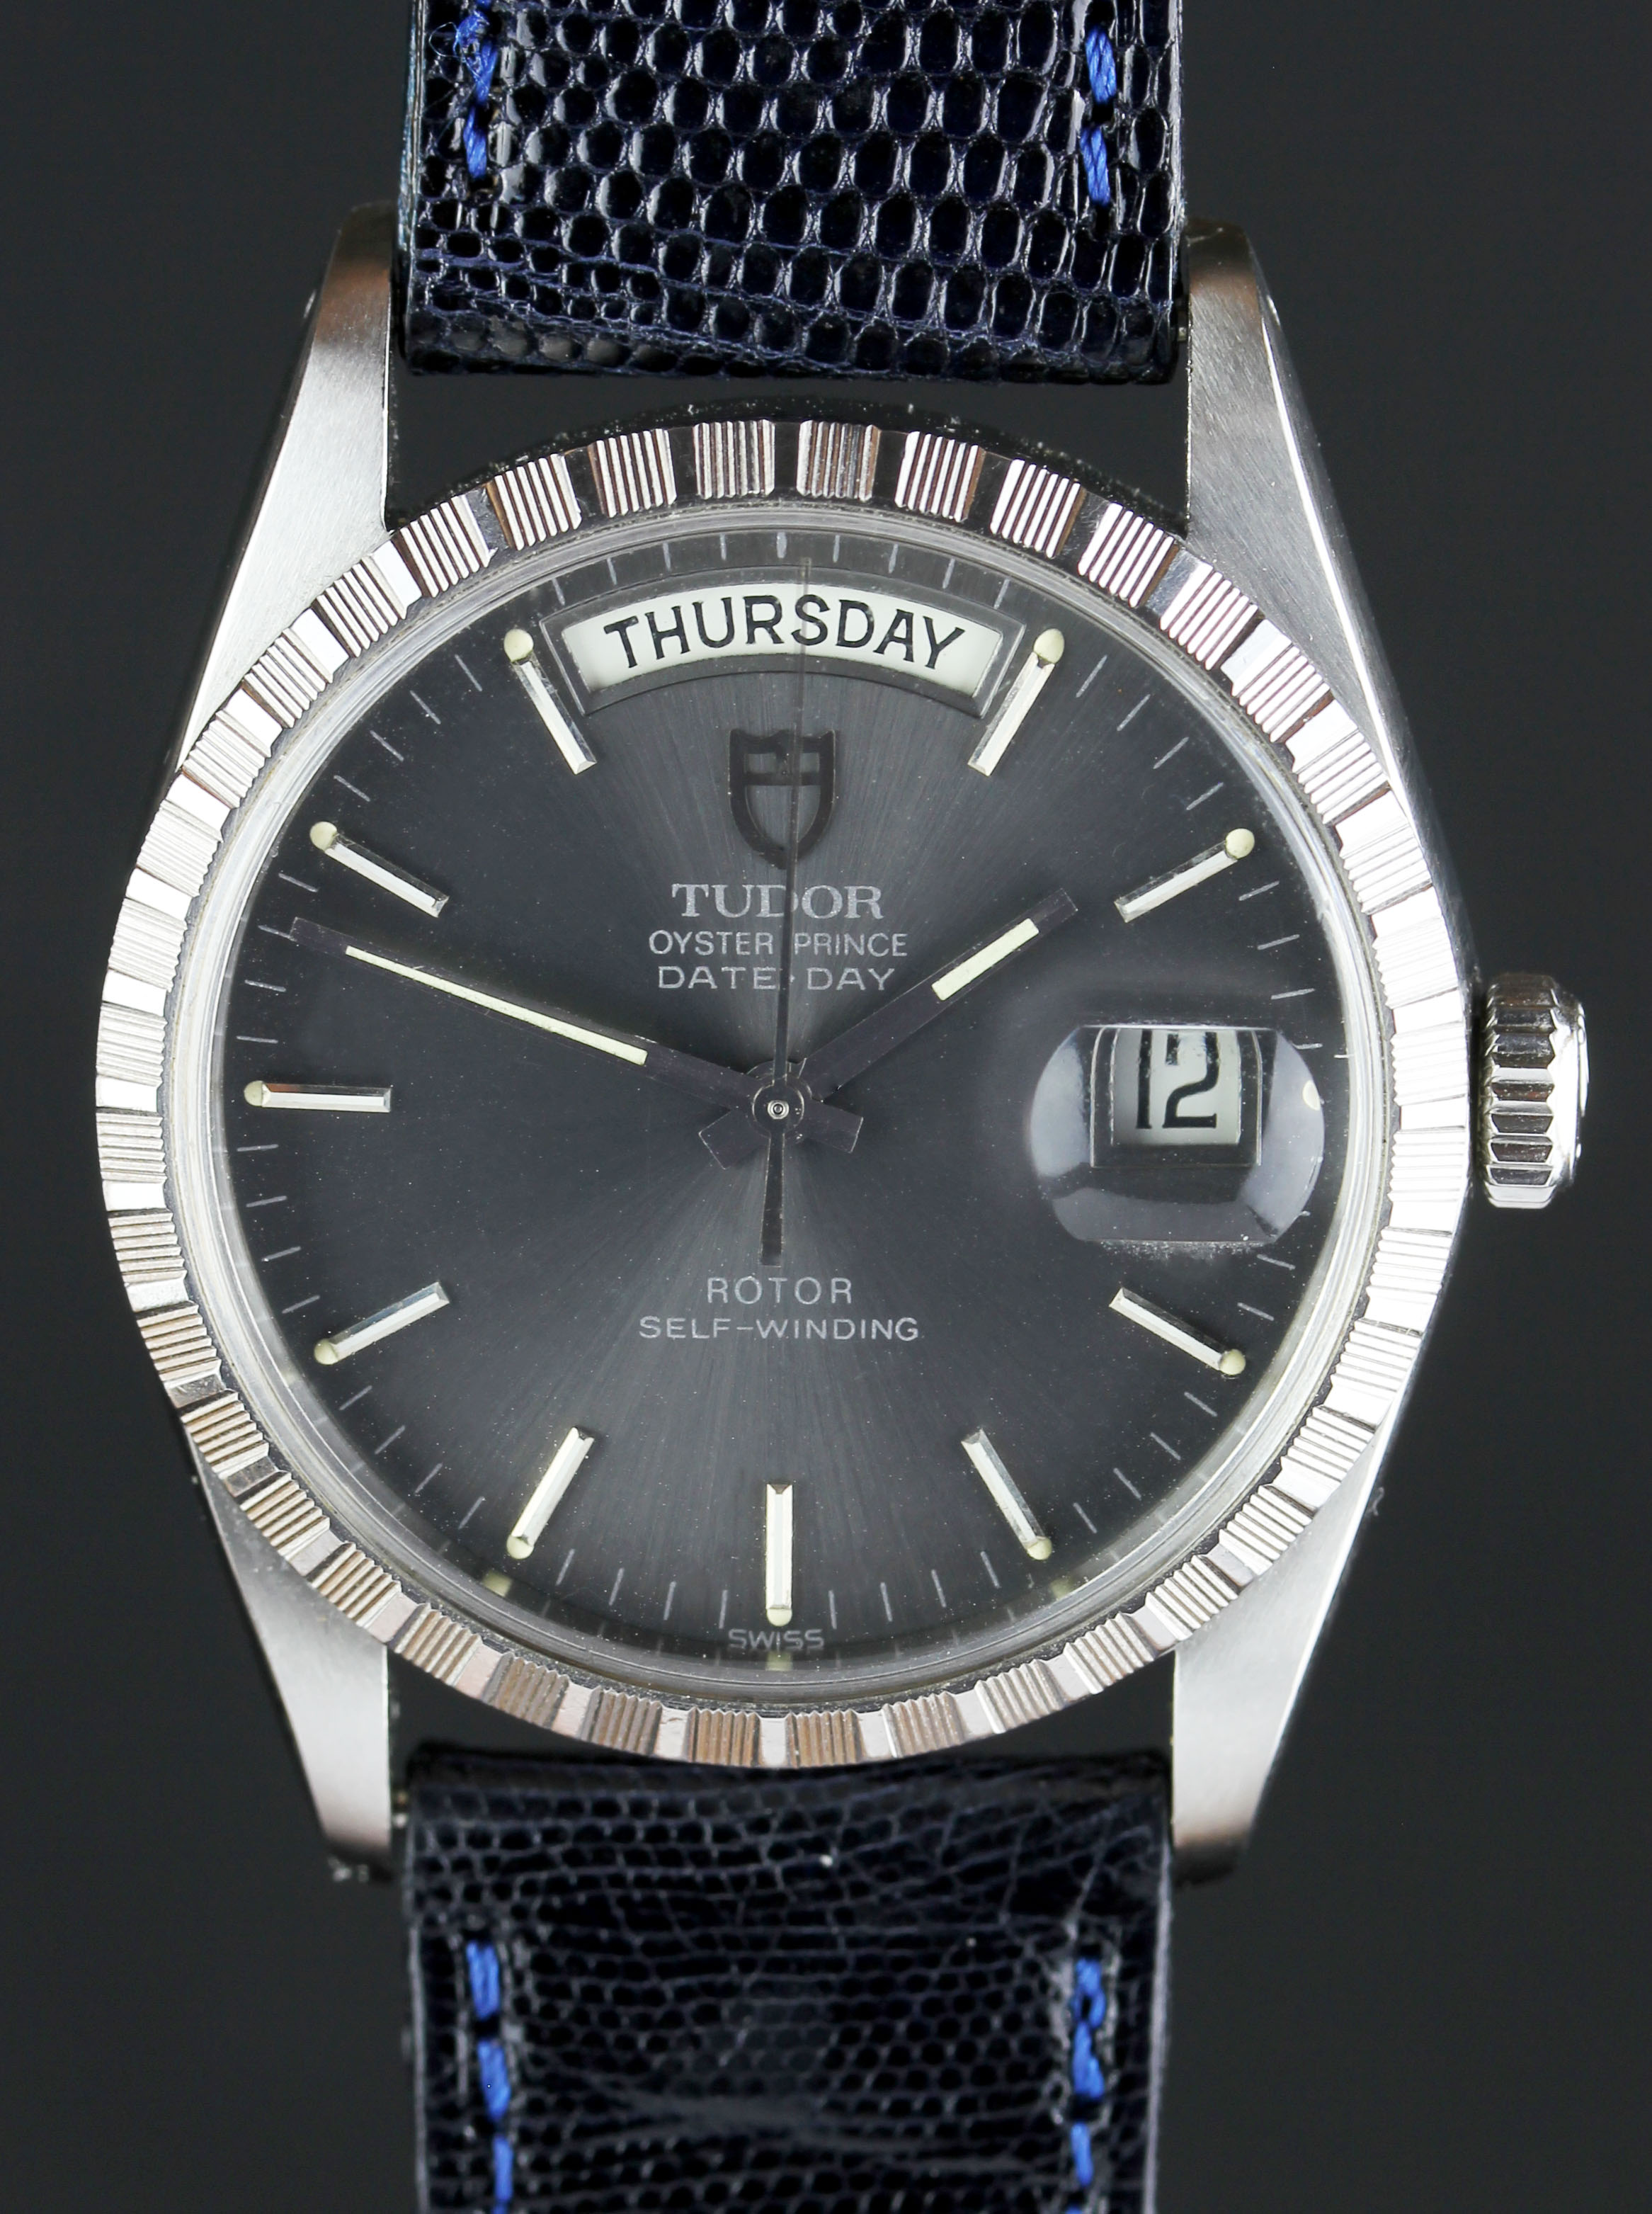 TUDOR Oyster Prince Date + Day, ref. 94510